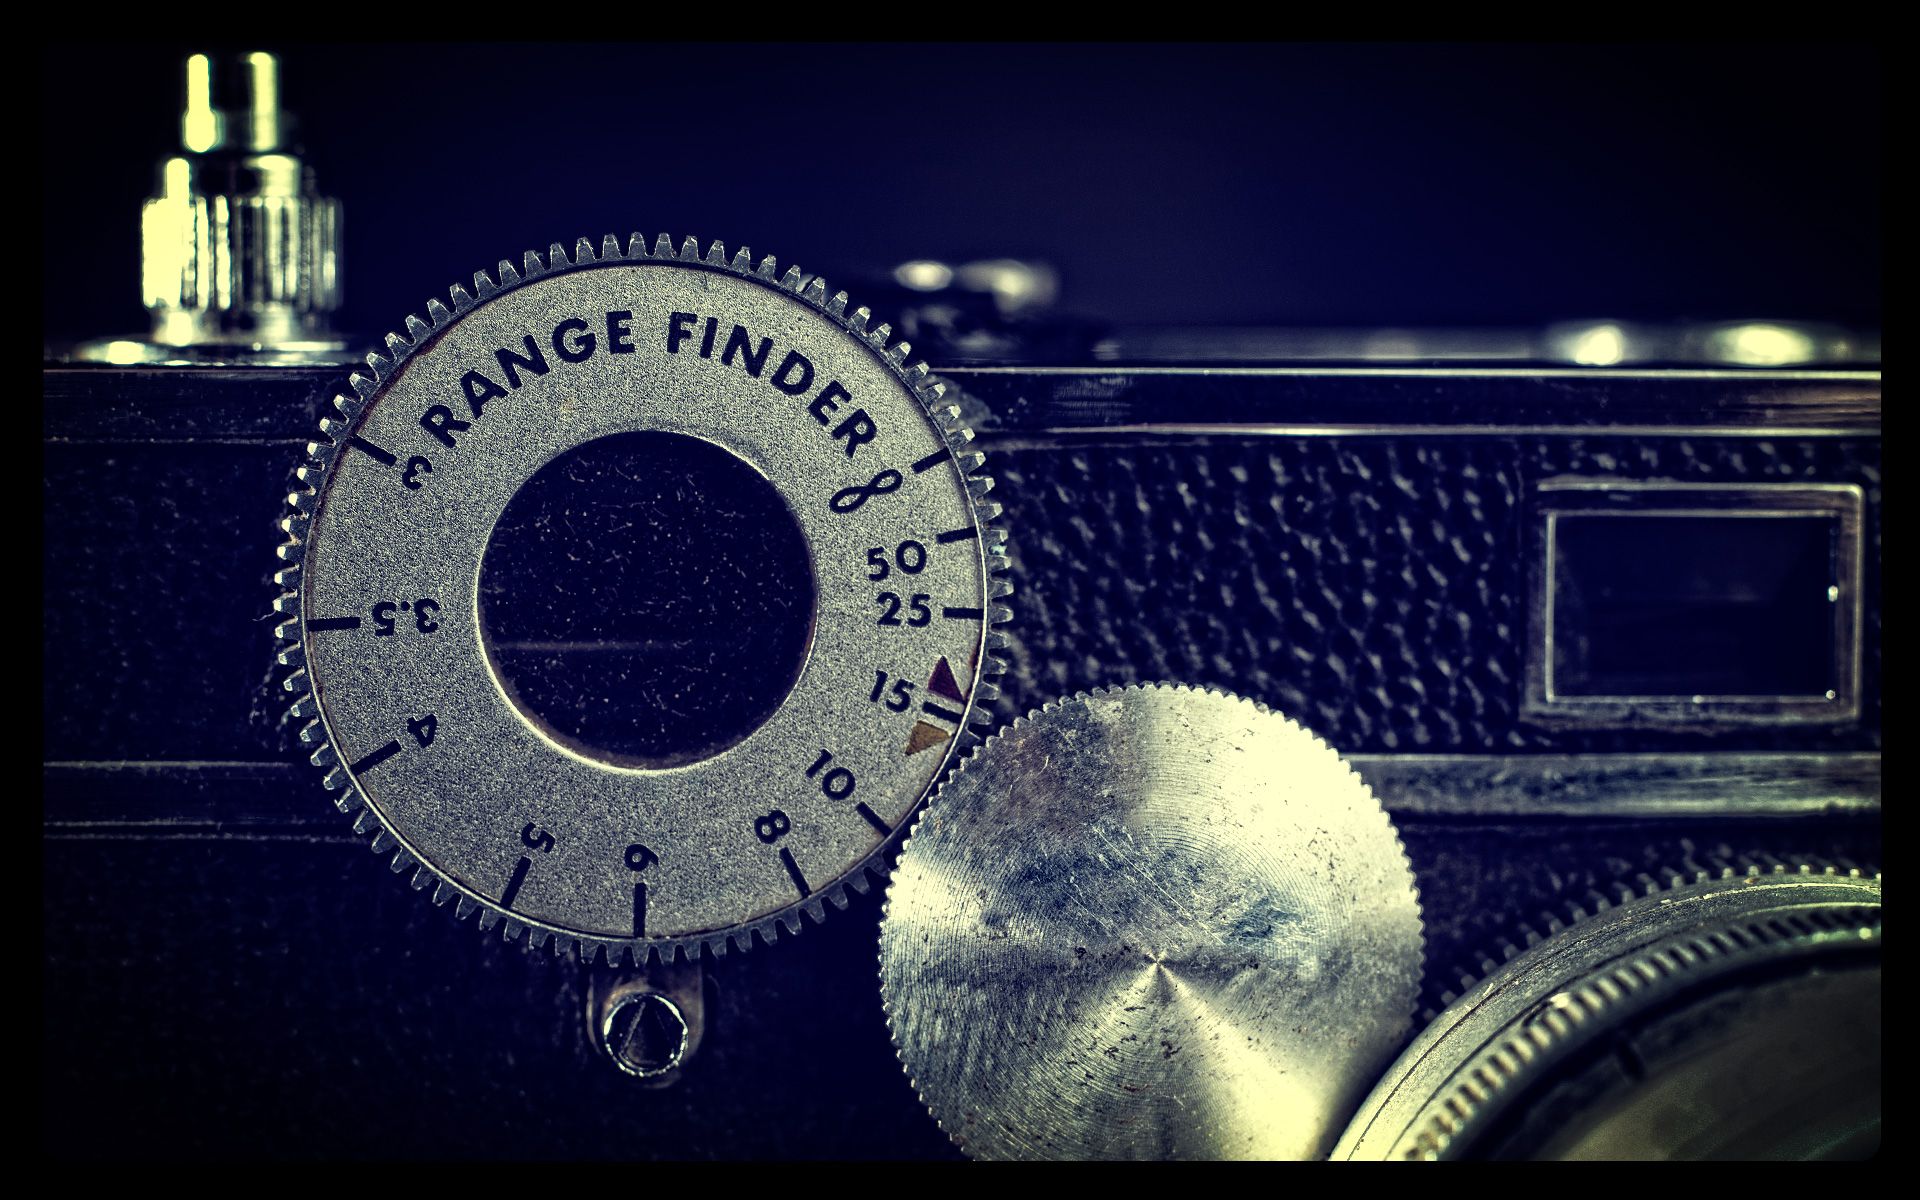 An Old Argus C3 Rangefinder Camera